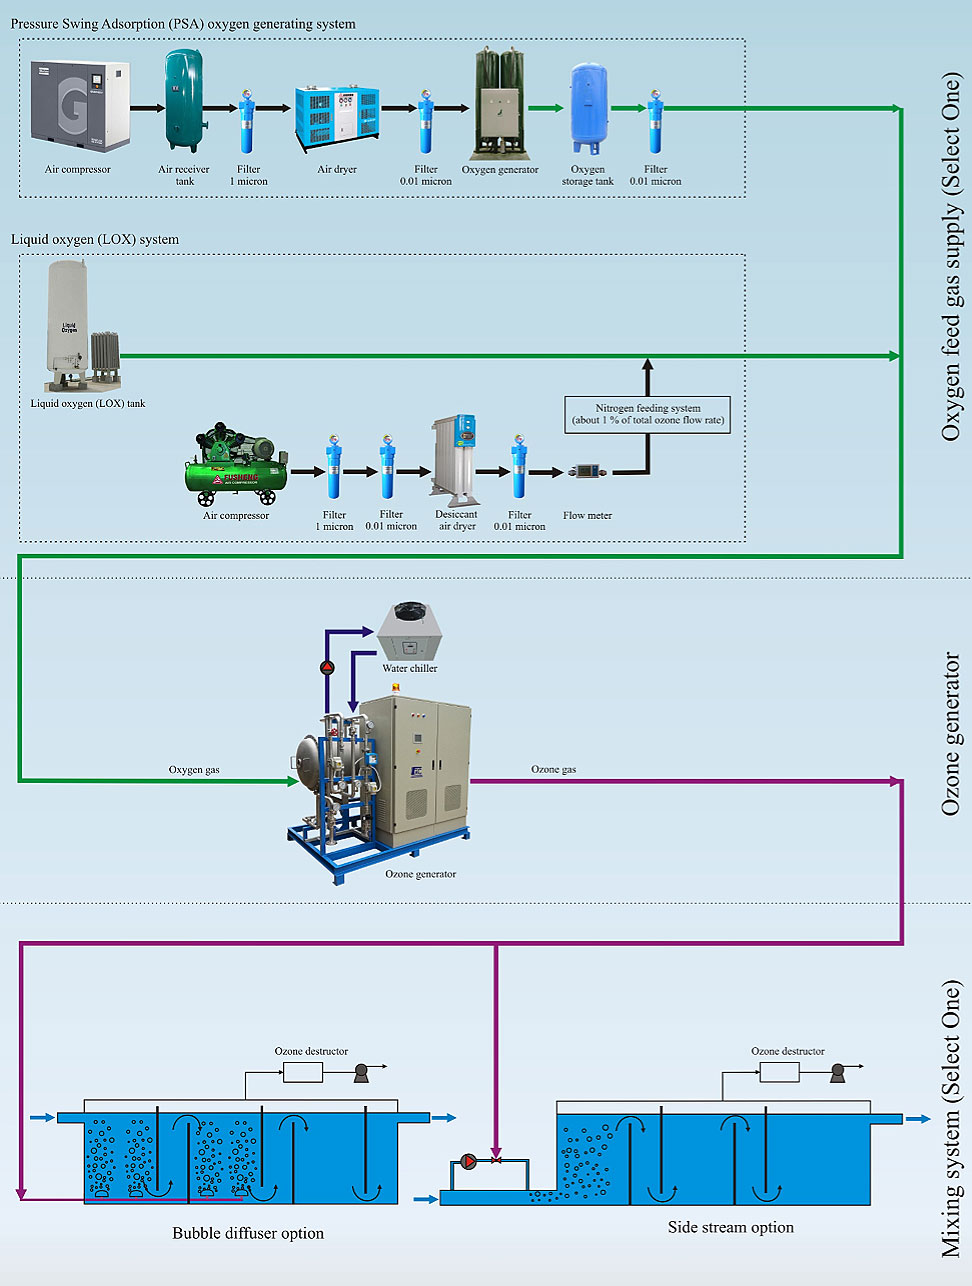 Typical flow diagram of ozone system for water treatment typical flow diagram of ozone system for water treatment ccuart Choice Image